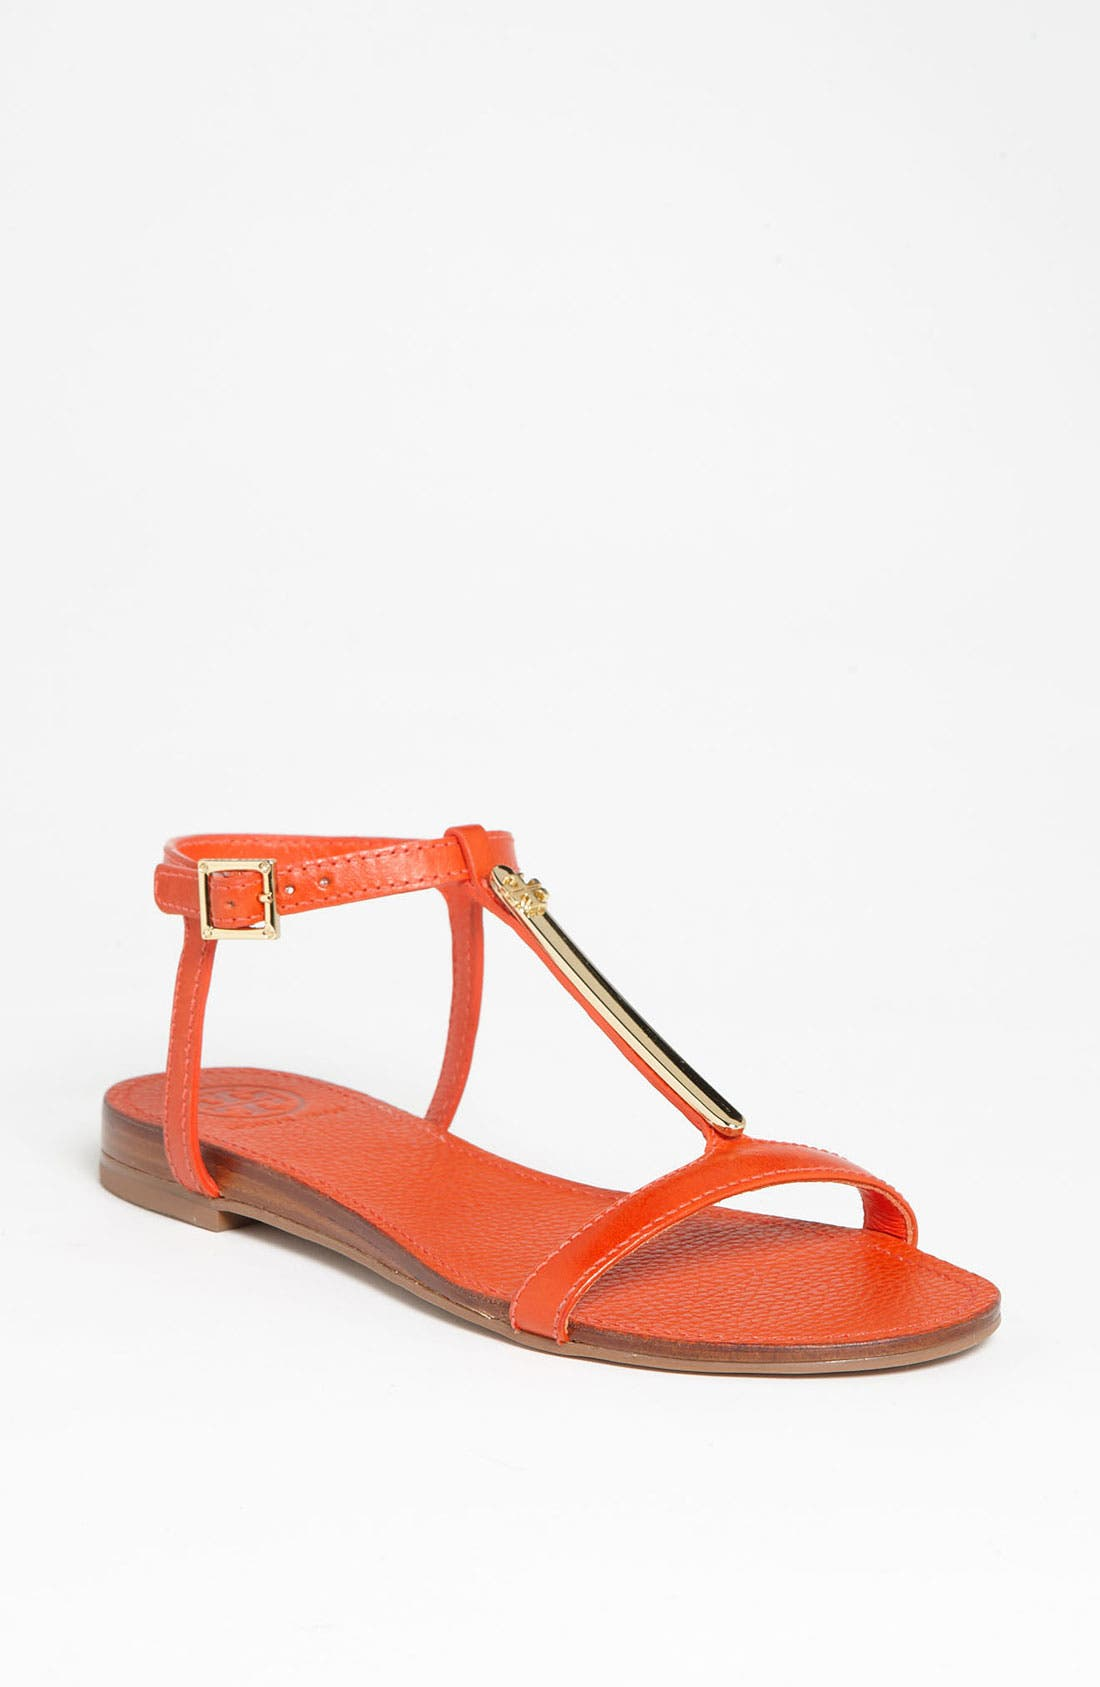 Main Image - Tory Burch 'Pacey' Sandal